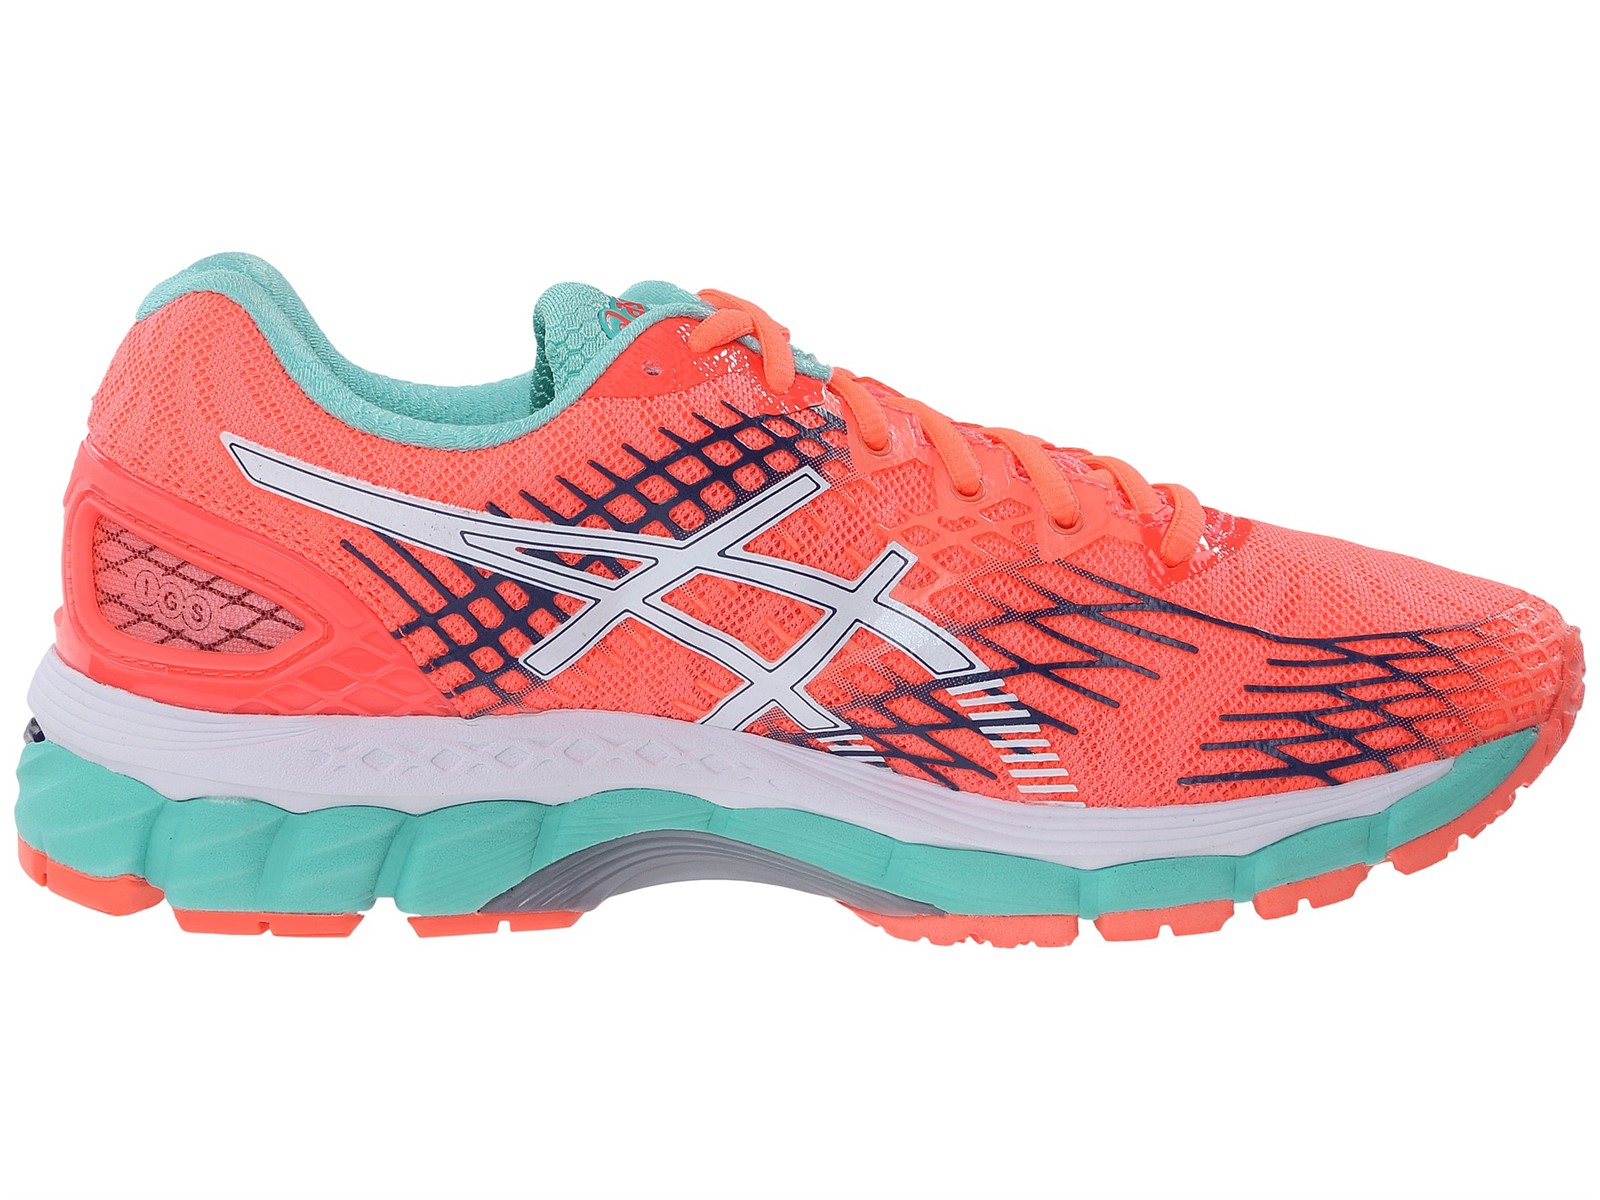 new asics gel nimbus 17 running shoes womens size 7 ebay. Black Bedroom Furniture Sets. Home Design Ideas